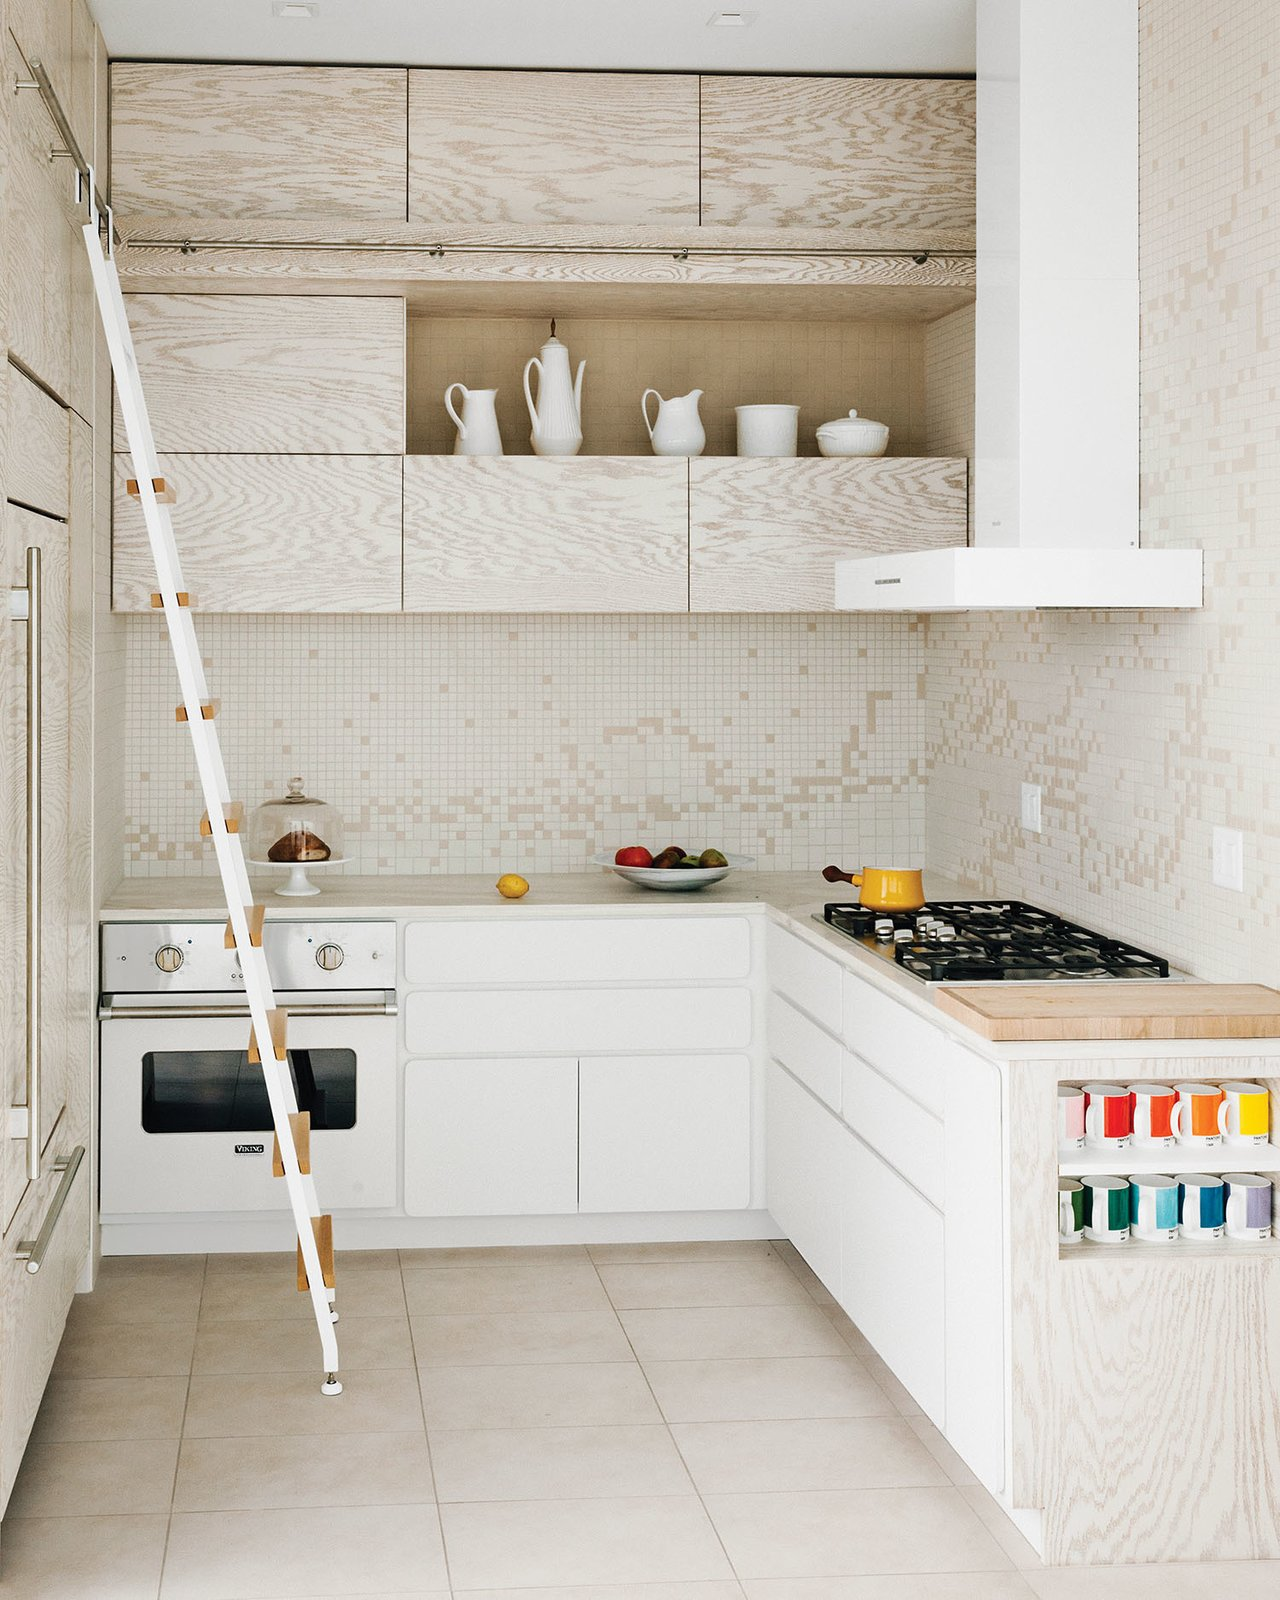 """Kitchen, Mosaic Tile Backsplashe, Range Hood, Range, Wall Oven, Recessed Lighting, Wood Counter, Refrigerator, and White Cabinet To complement the white-washed custom cabinetry in her kitchen, architect Julie Salles Schaffer has designed a tile backsplash to resemble """"melting butter in a white pan"""". Daltile arranged her two-color AutoCAD design—white and off-white—onto a mesh backing for a small fee. To soften the edges of the cabinets' drawers and doors, Schaffer requested radial edging.    Photo 2 of 6 in An Arctic White Kitchen Renovation in Connecticut"""